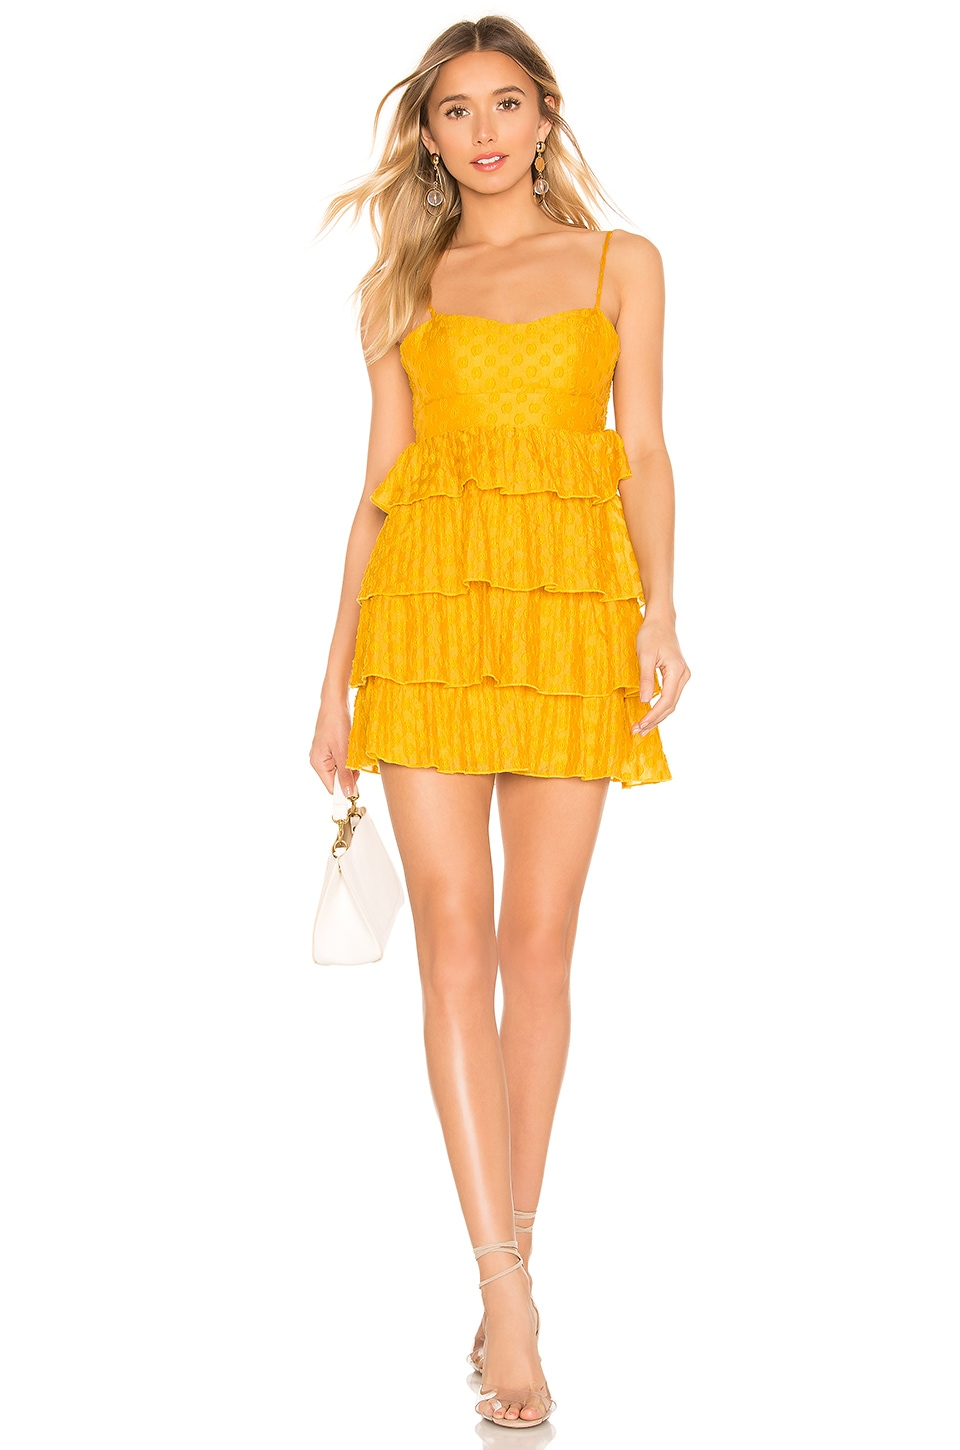 MAJORELLE Ruthanne Mini Dress in Mustard Yellow